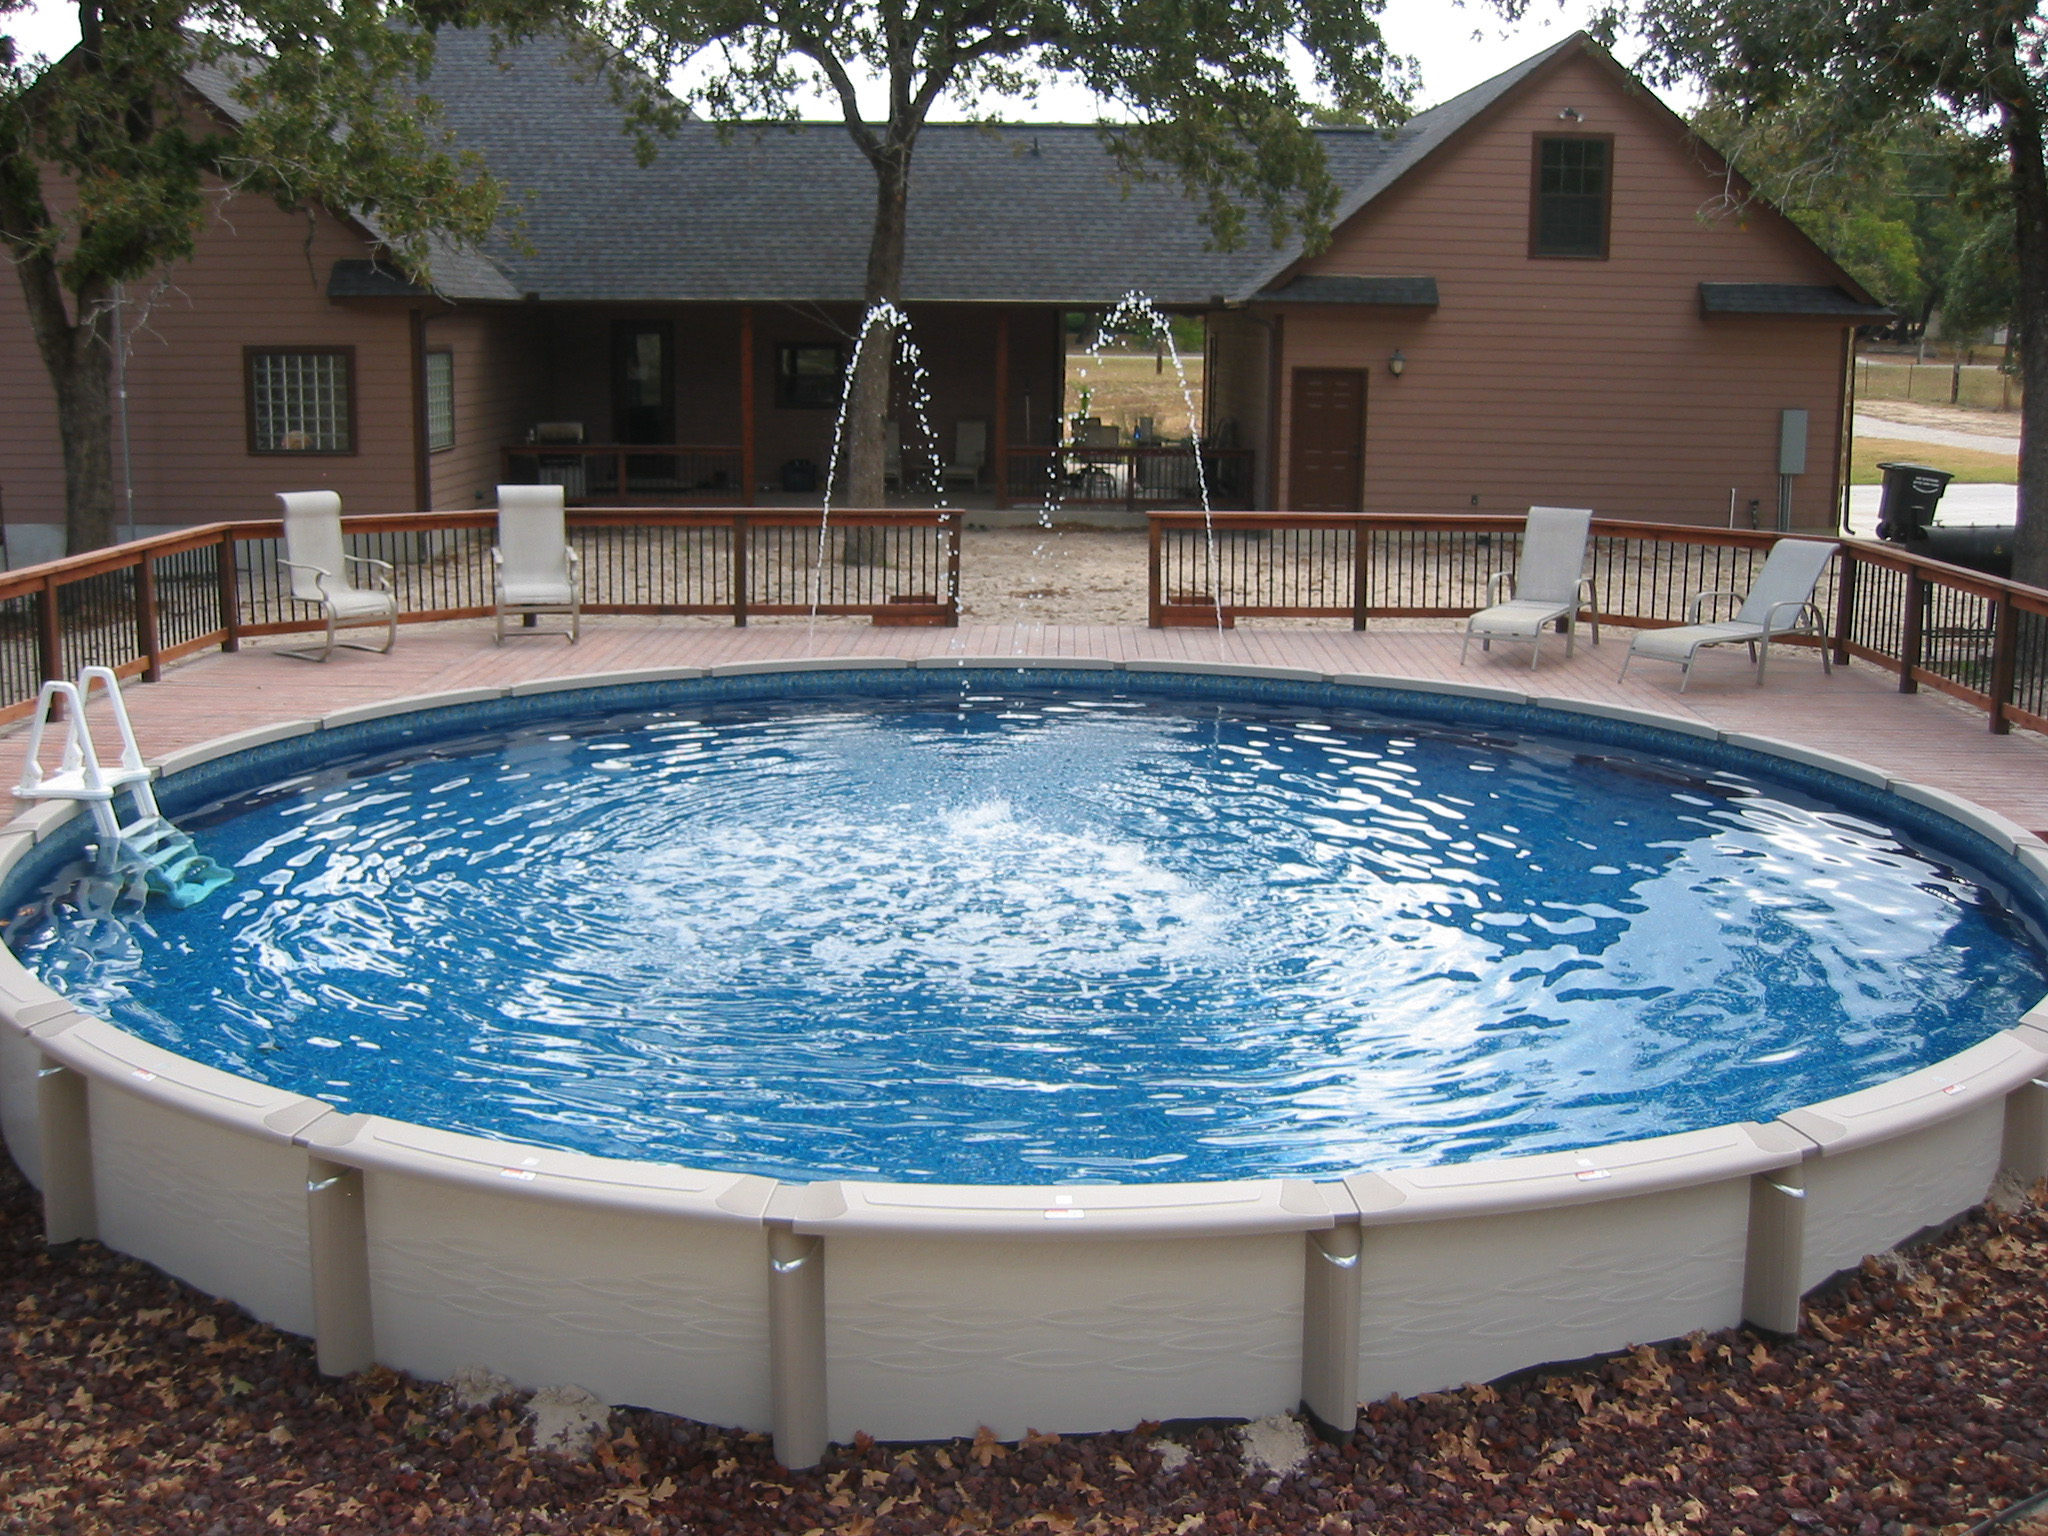 Best above ground swimming pools design on vine for Pool design 2015